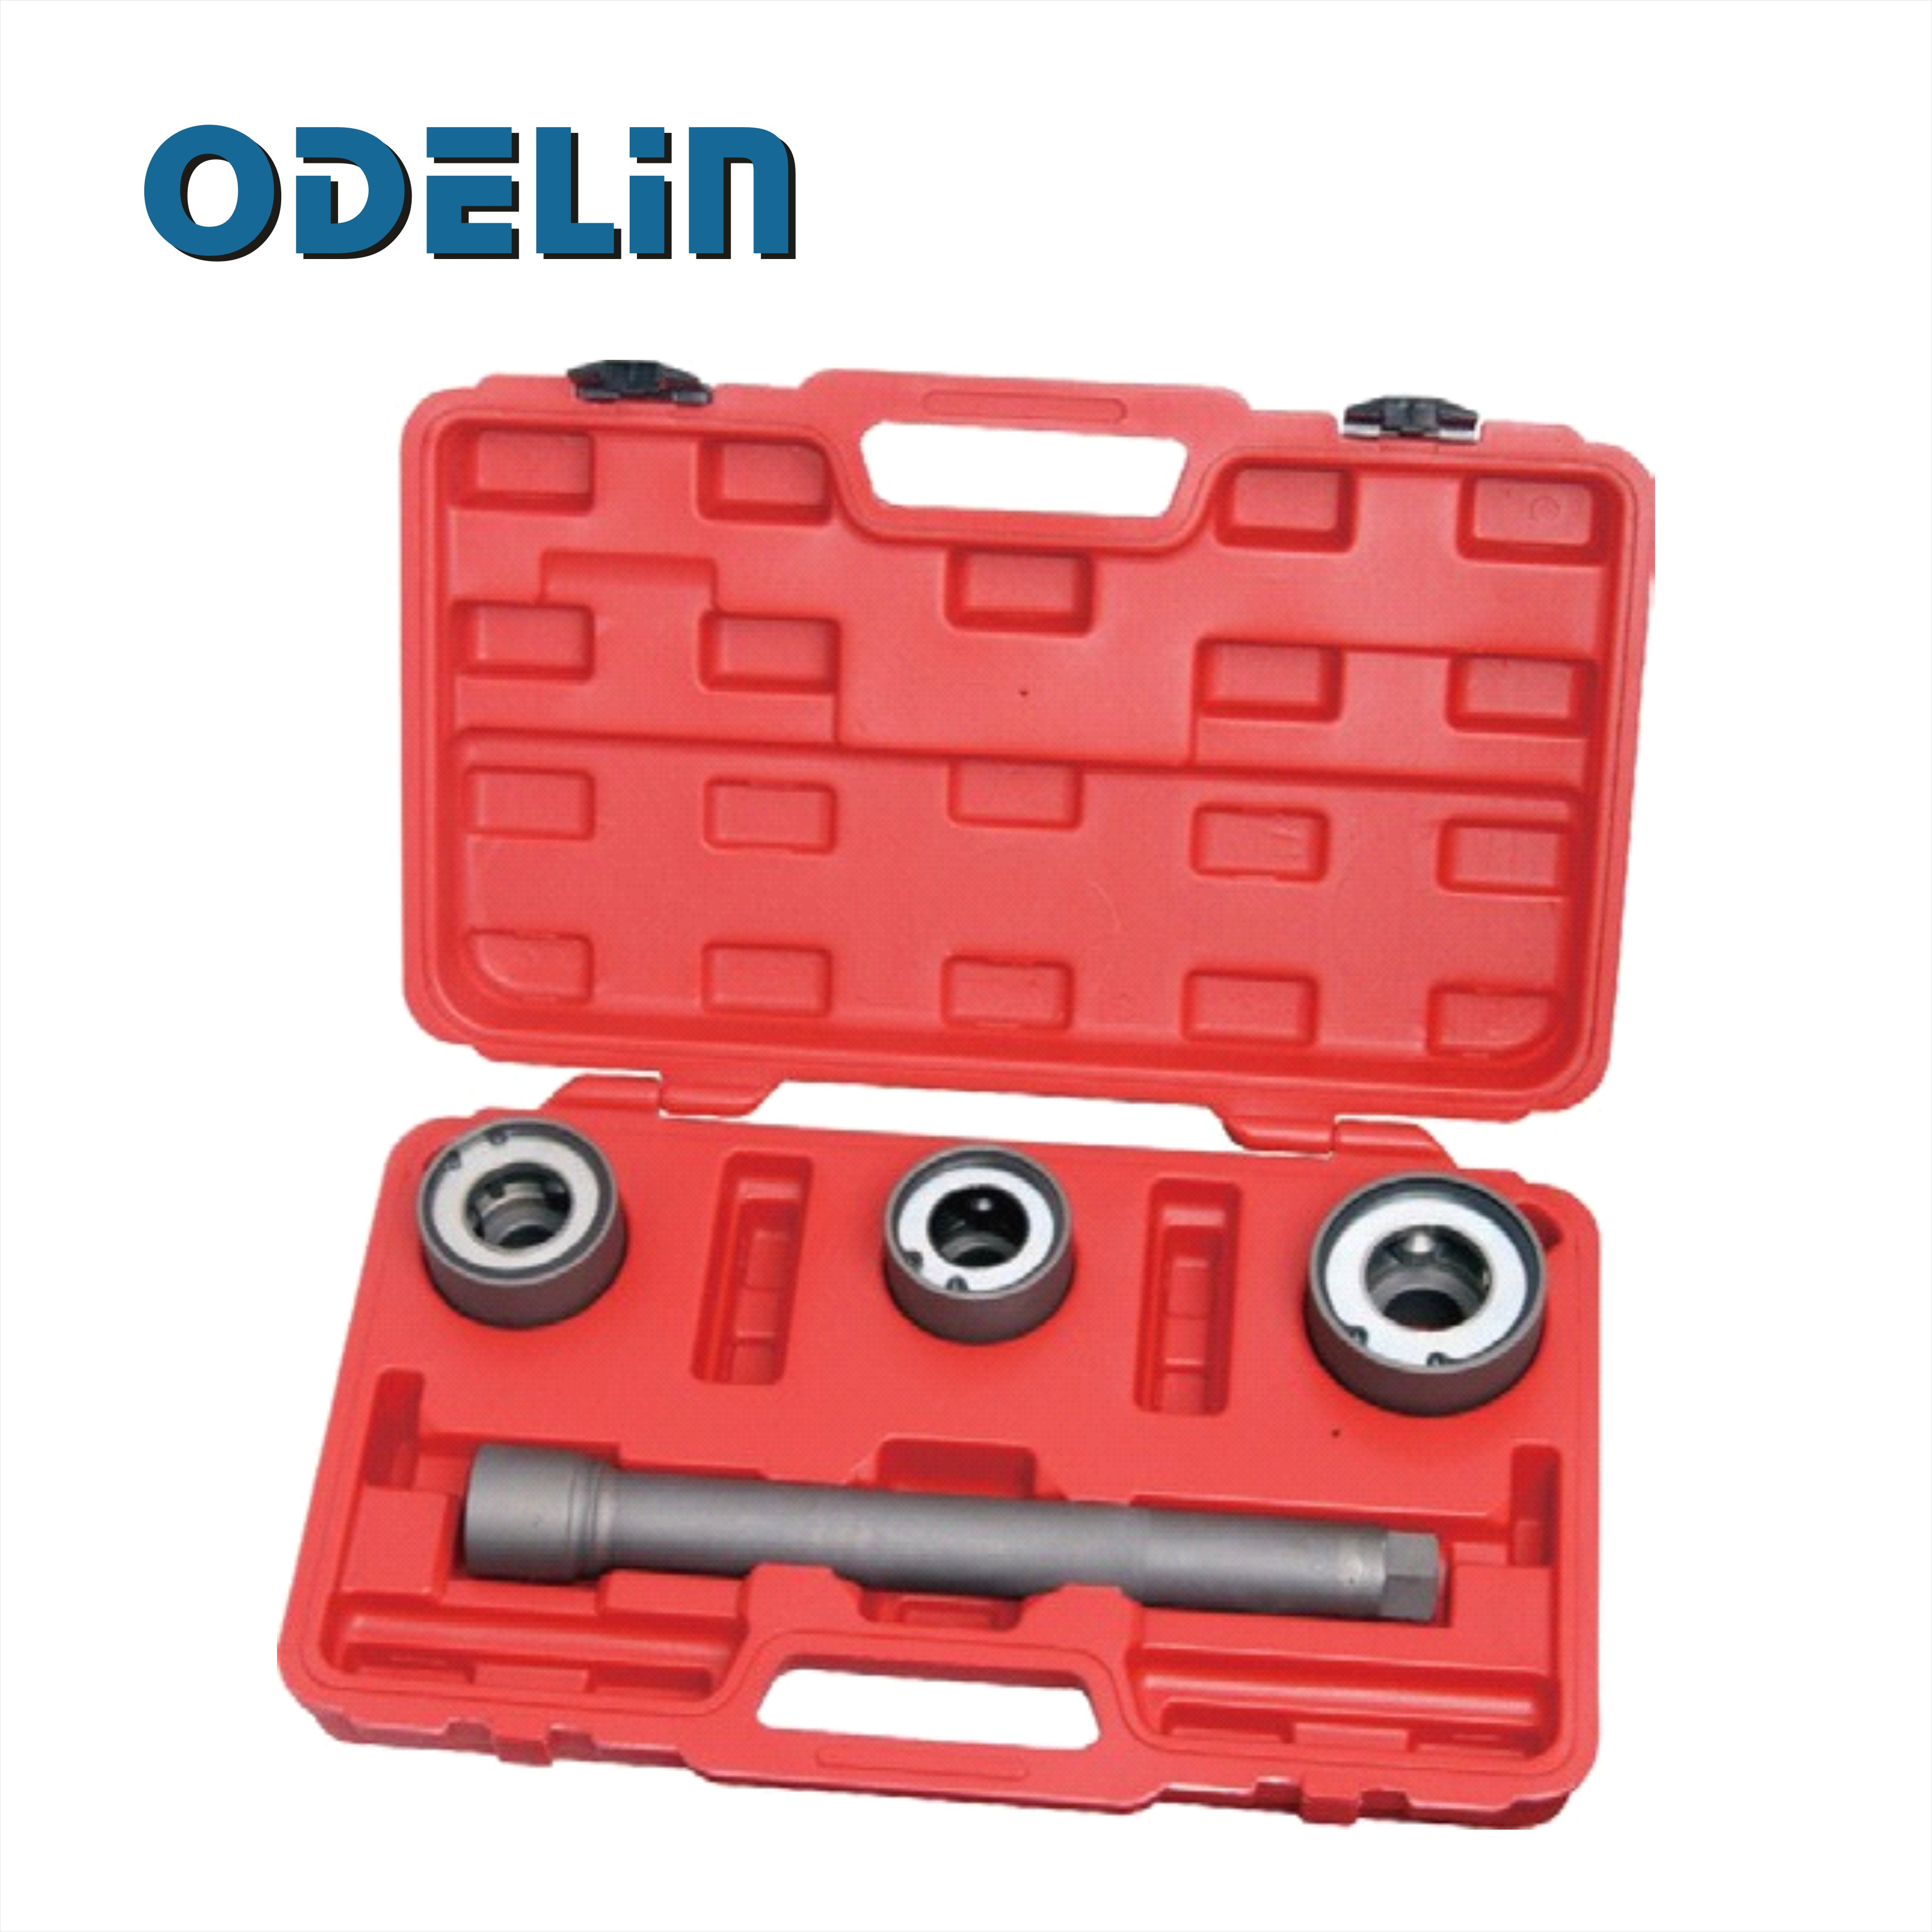 30-45mm Track Rod End Axial Joint Removal Tool Steering Rack Knuckle Tie 4pc james mcdonagh quinn knuckle